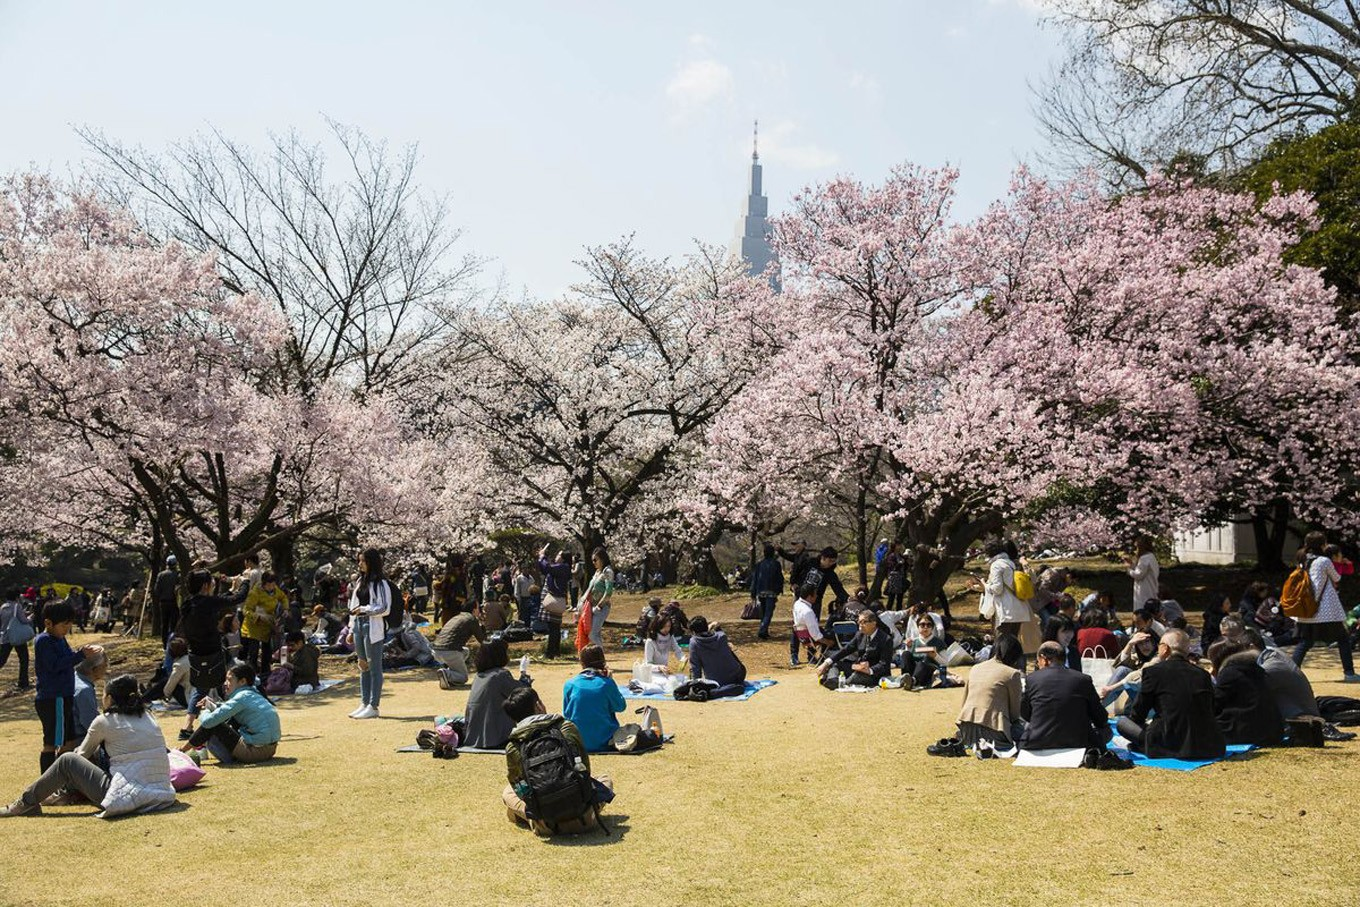 How to shoot the cherry blossoms: Tips from a photographer